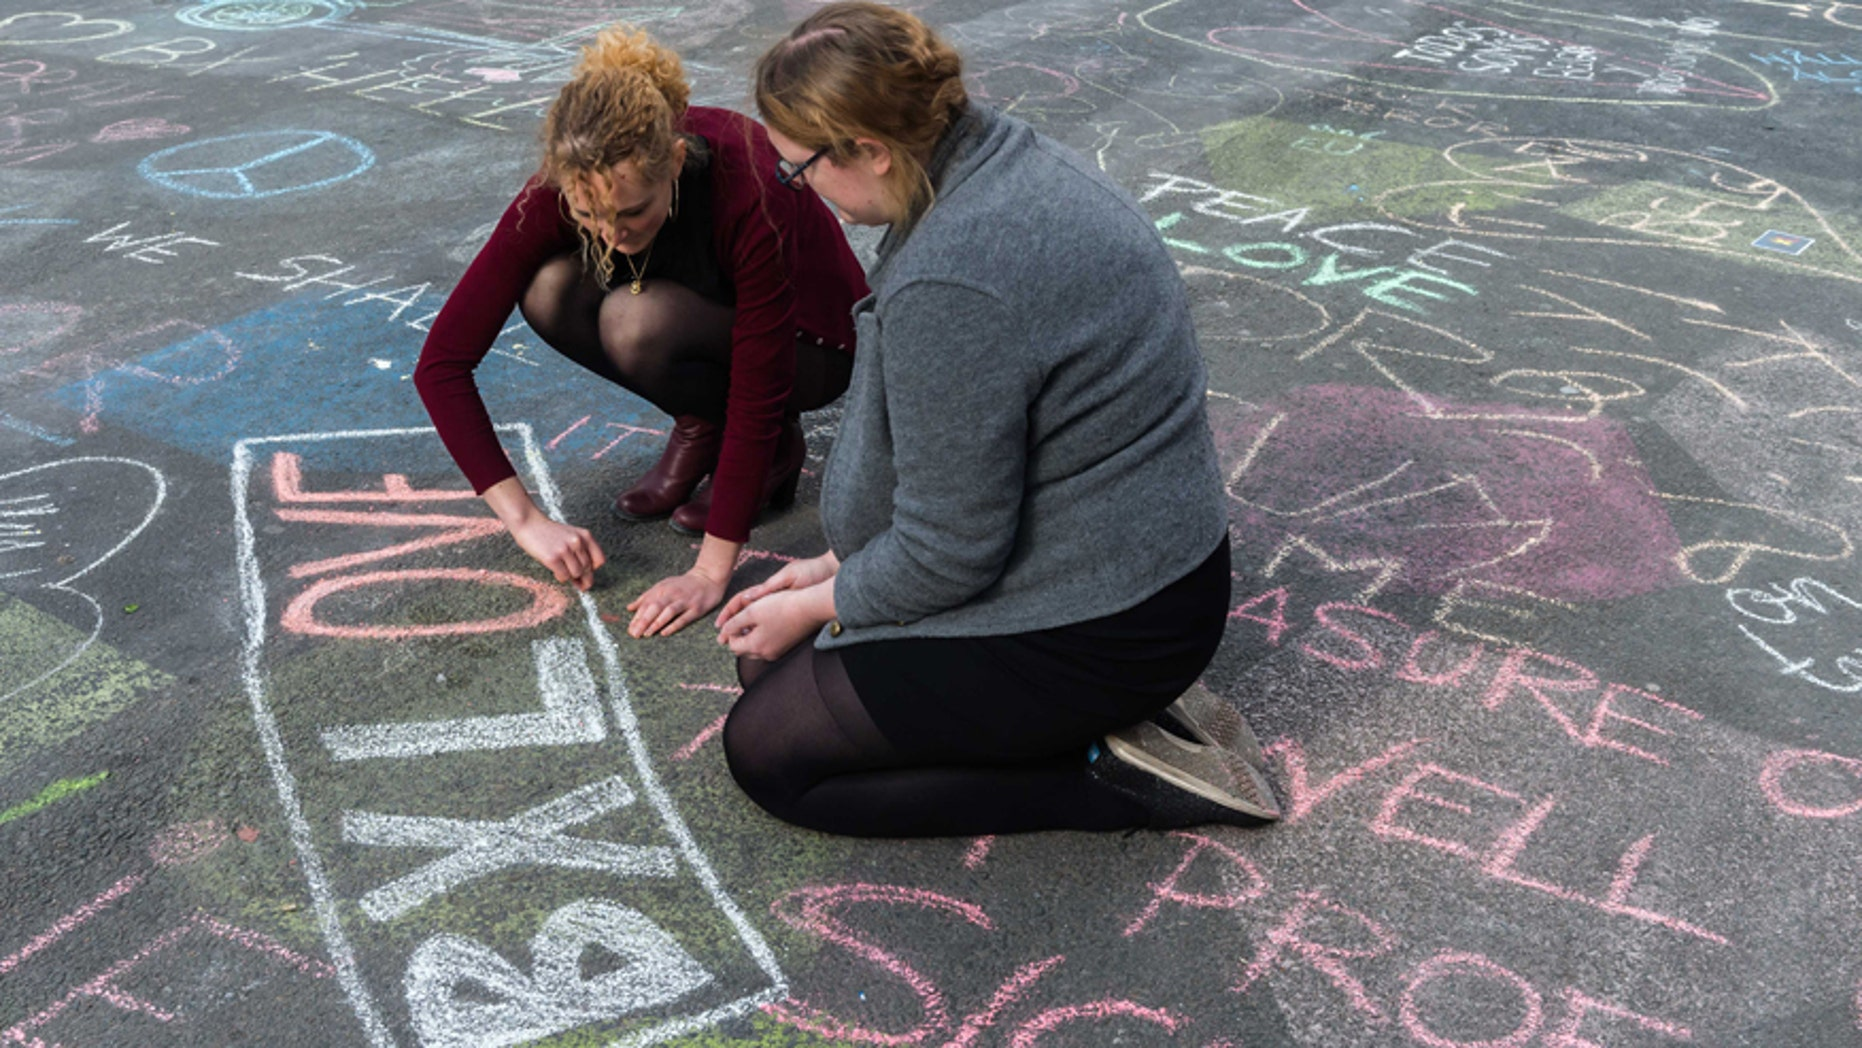 March 22, 2016: Two people write solidarity messages in chalk outside the stock exchange in Brussels.